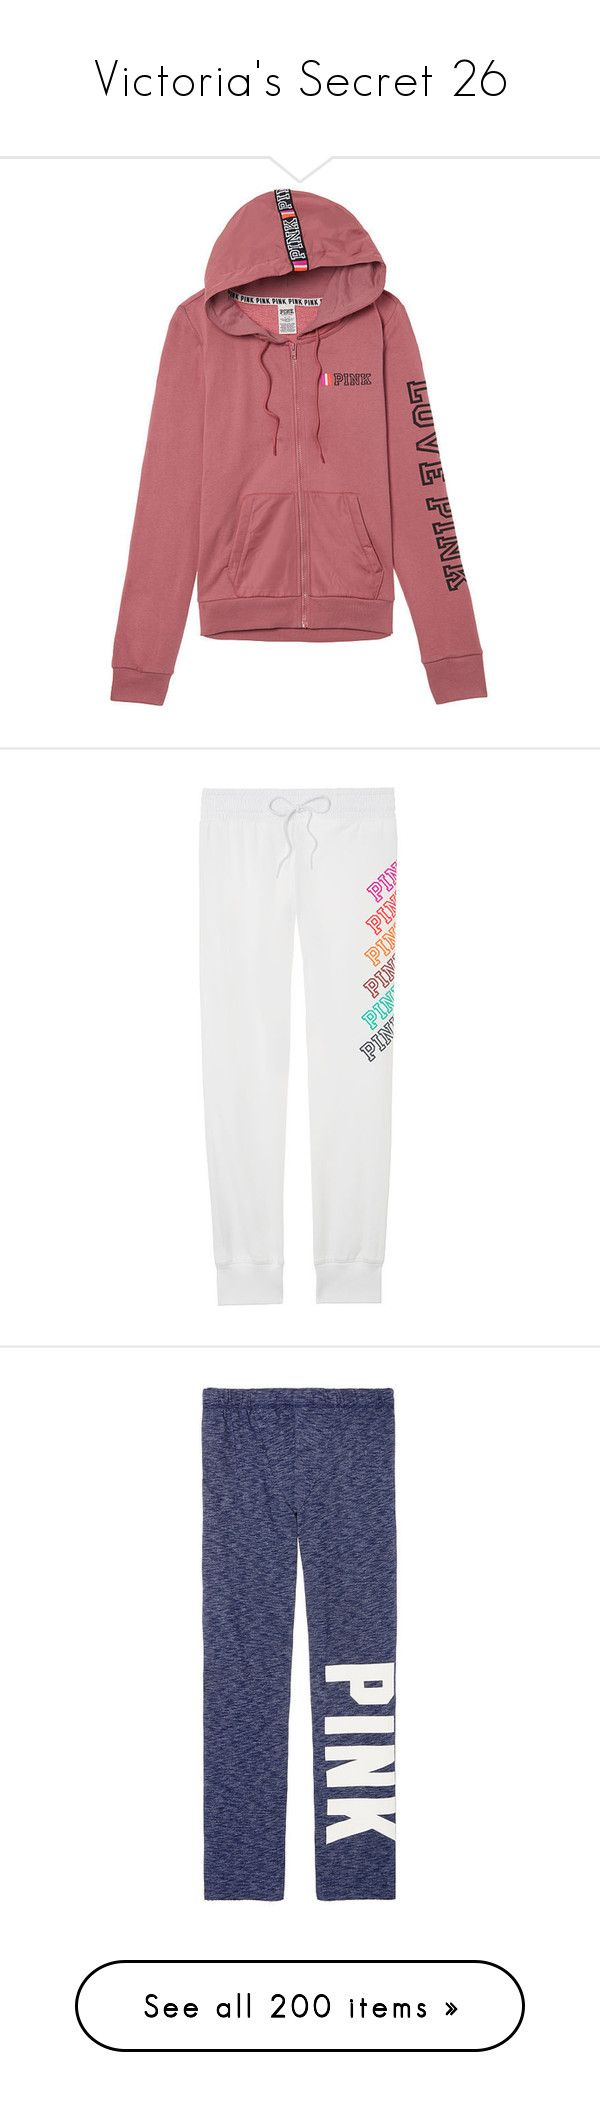 """""""Victoria's Secret 26"""" by ponyshirtirwin ❤ liked on Polyvore featuring victoria's secret, activewear, activewear pants, jogger sweatpants, skinny leg sweat pants, victoria secret sportswear, victoria secret activewear, skinny sweat pants, intimates and hosiery"""